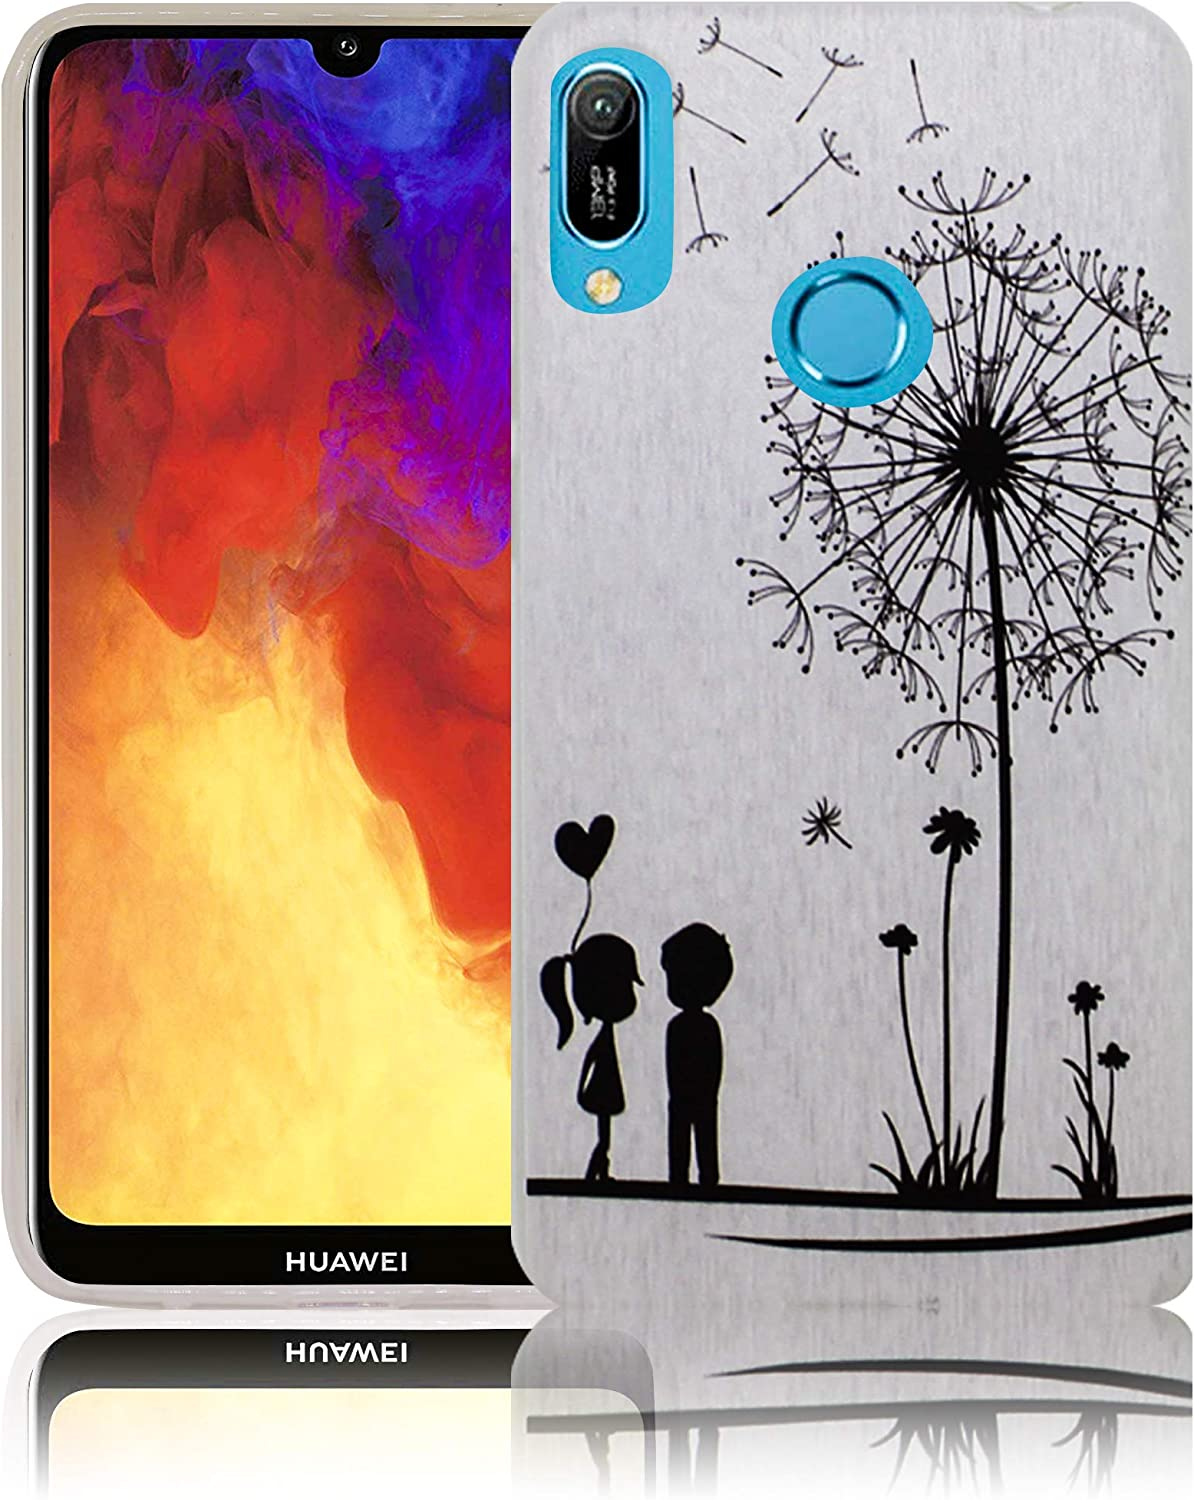 thematys Suitable for Huawei Y9 2019 Comic Haha Mobile phone case silicone dustproof shockproof /& lightweight Smartphone case